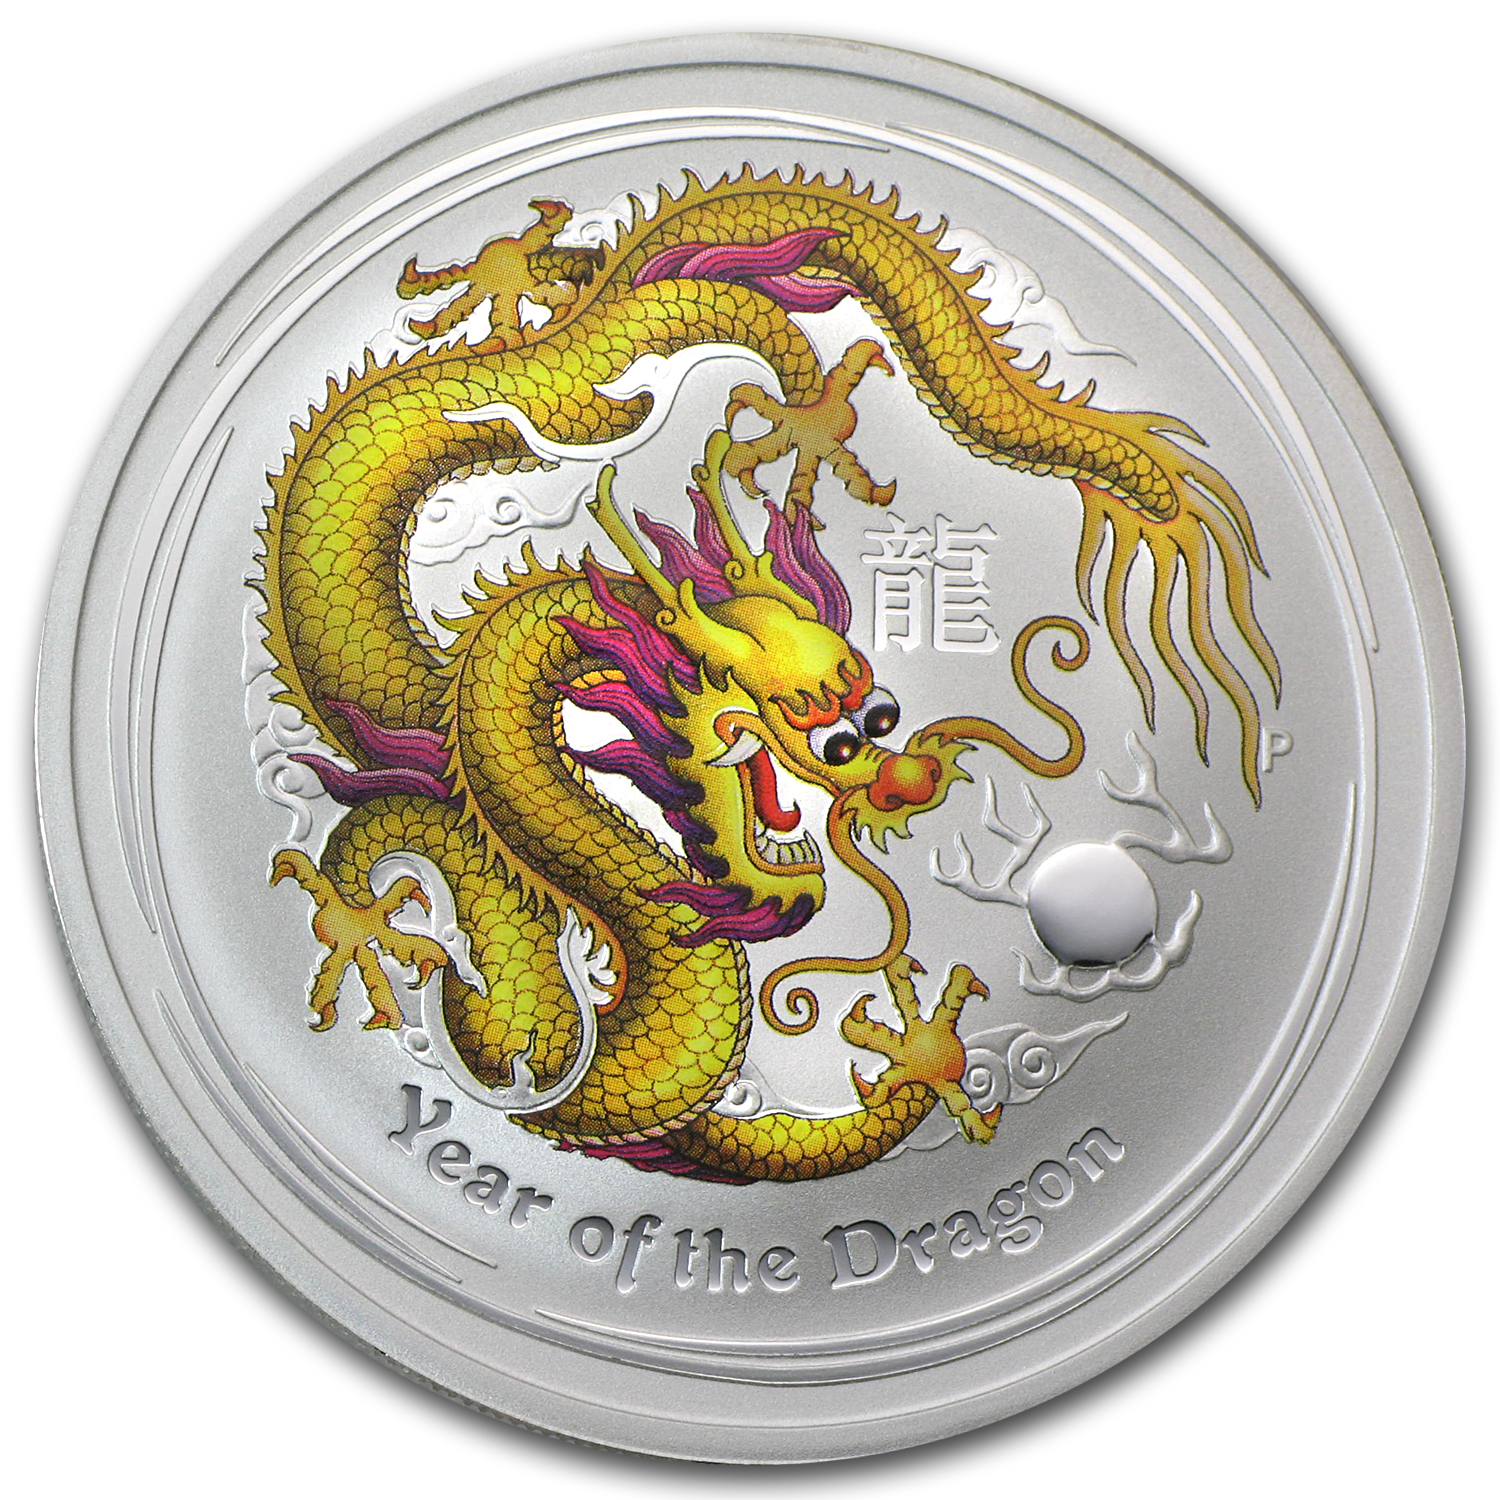 2012 Australia 1 oz Silver Dragon BU (Yellow Colorized)